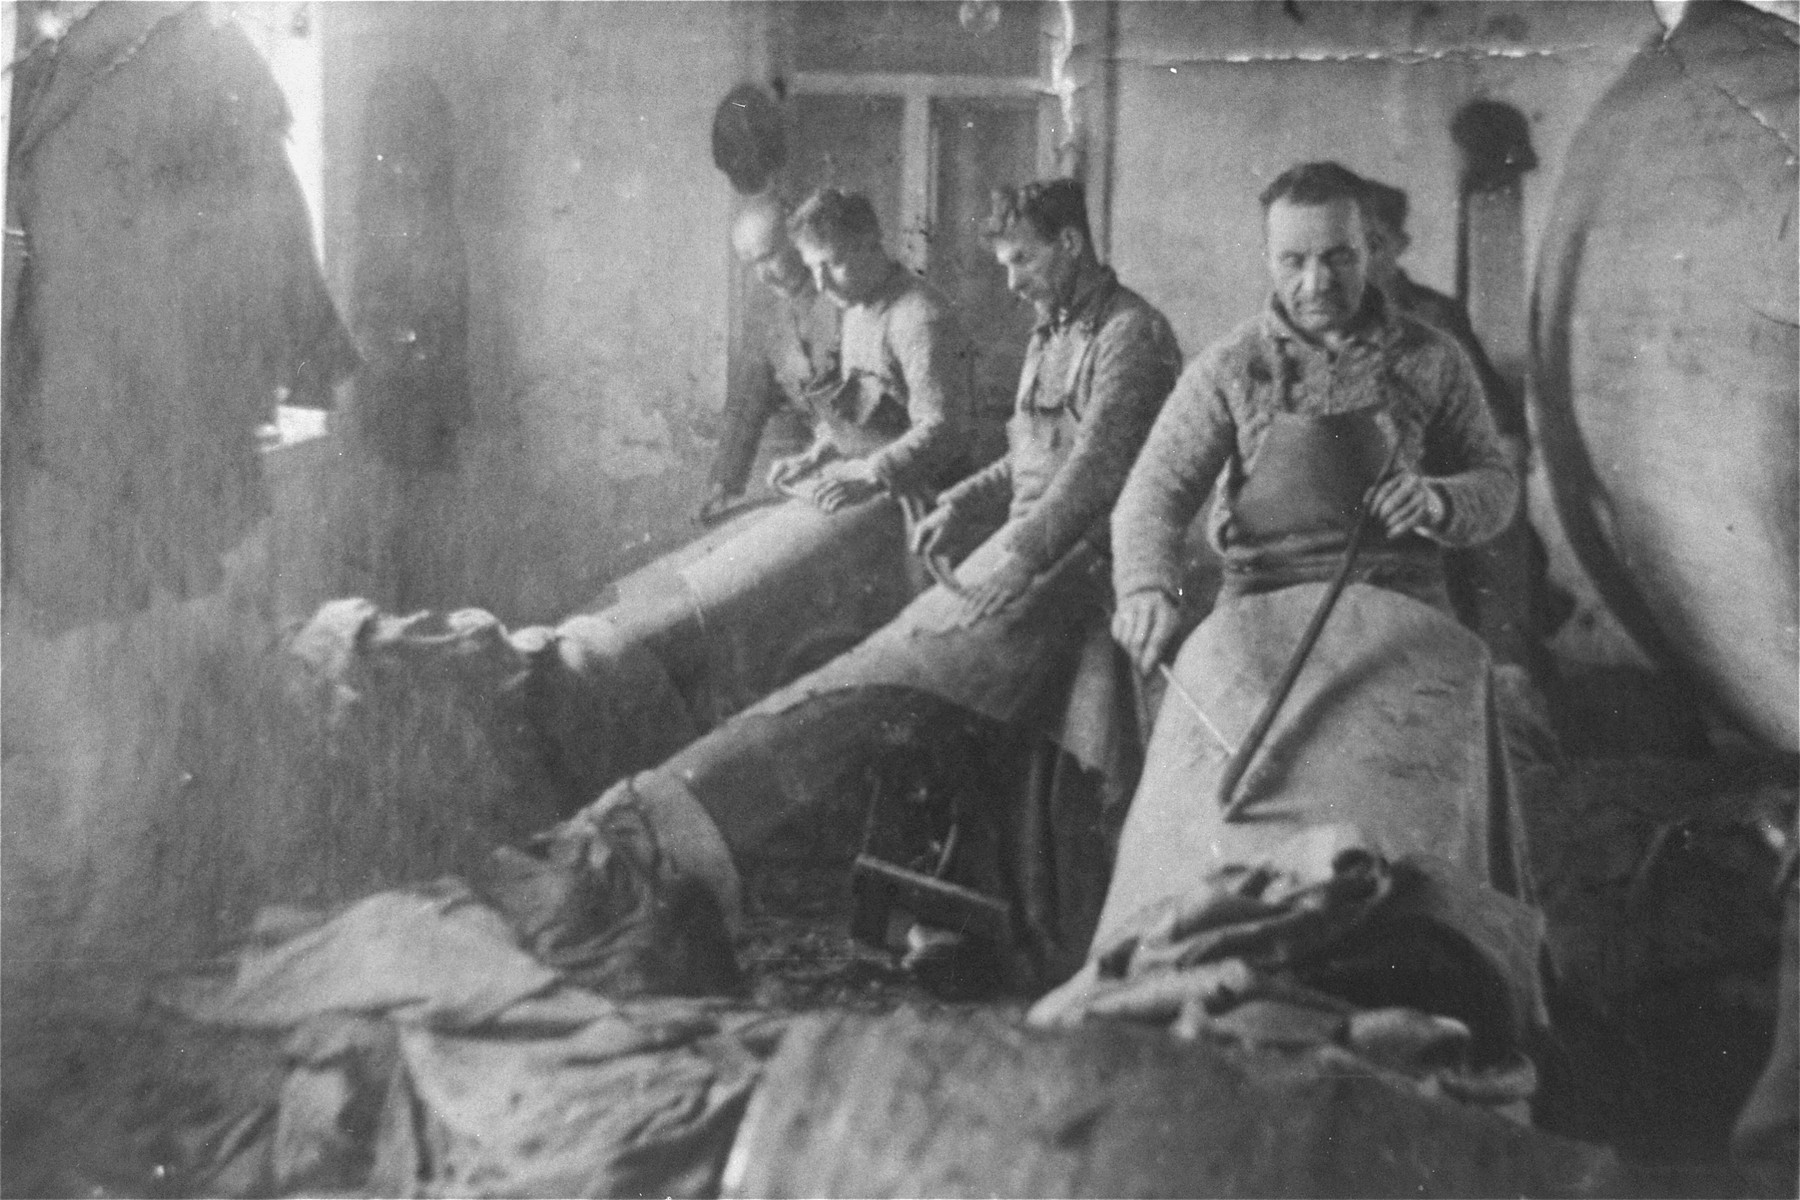 Jewish men working in a tanning workshop in the Glubokoye ghetto.